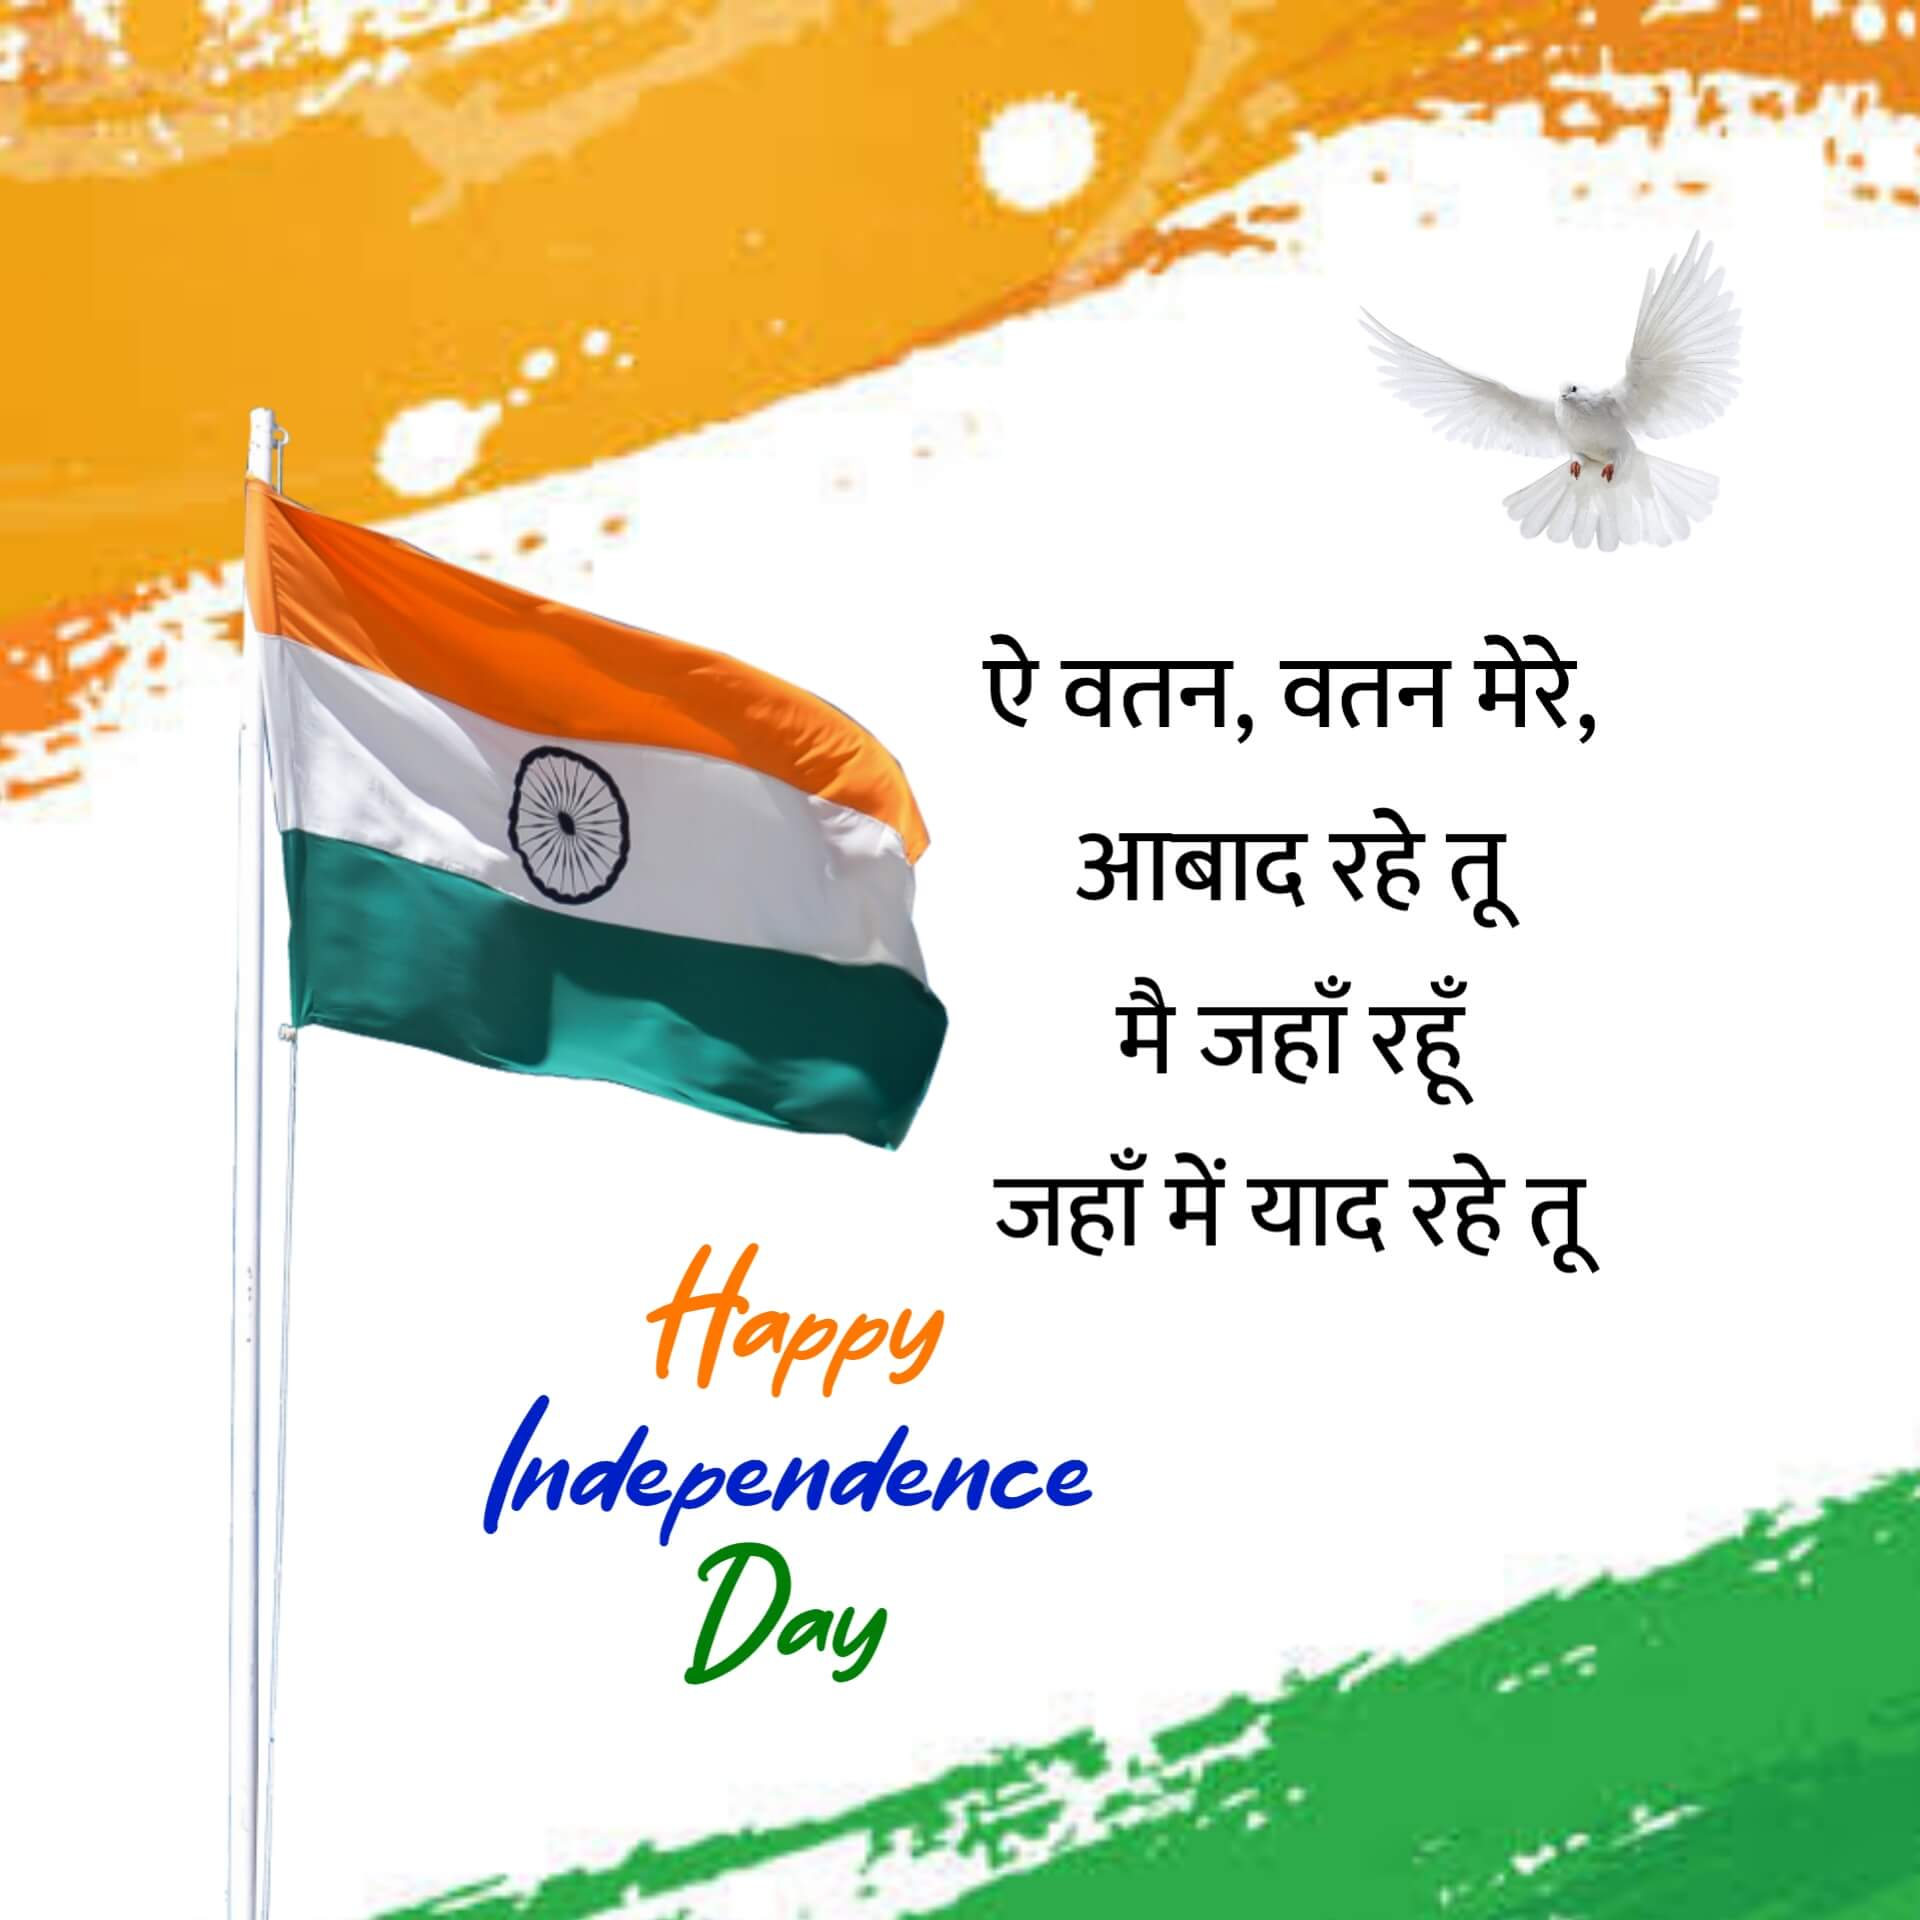 Hindi Independence Day Image with Quotes